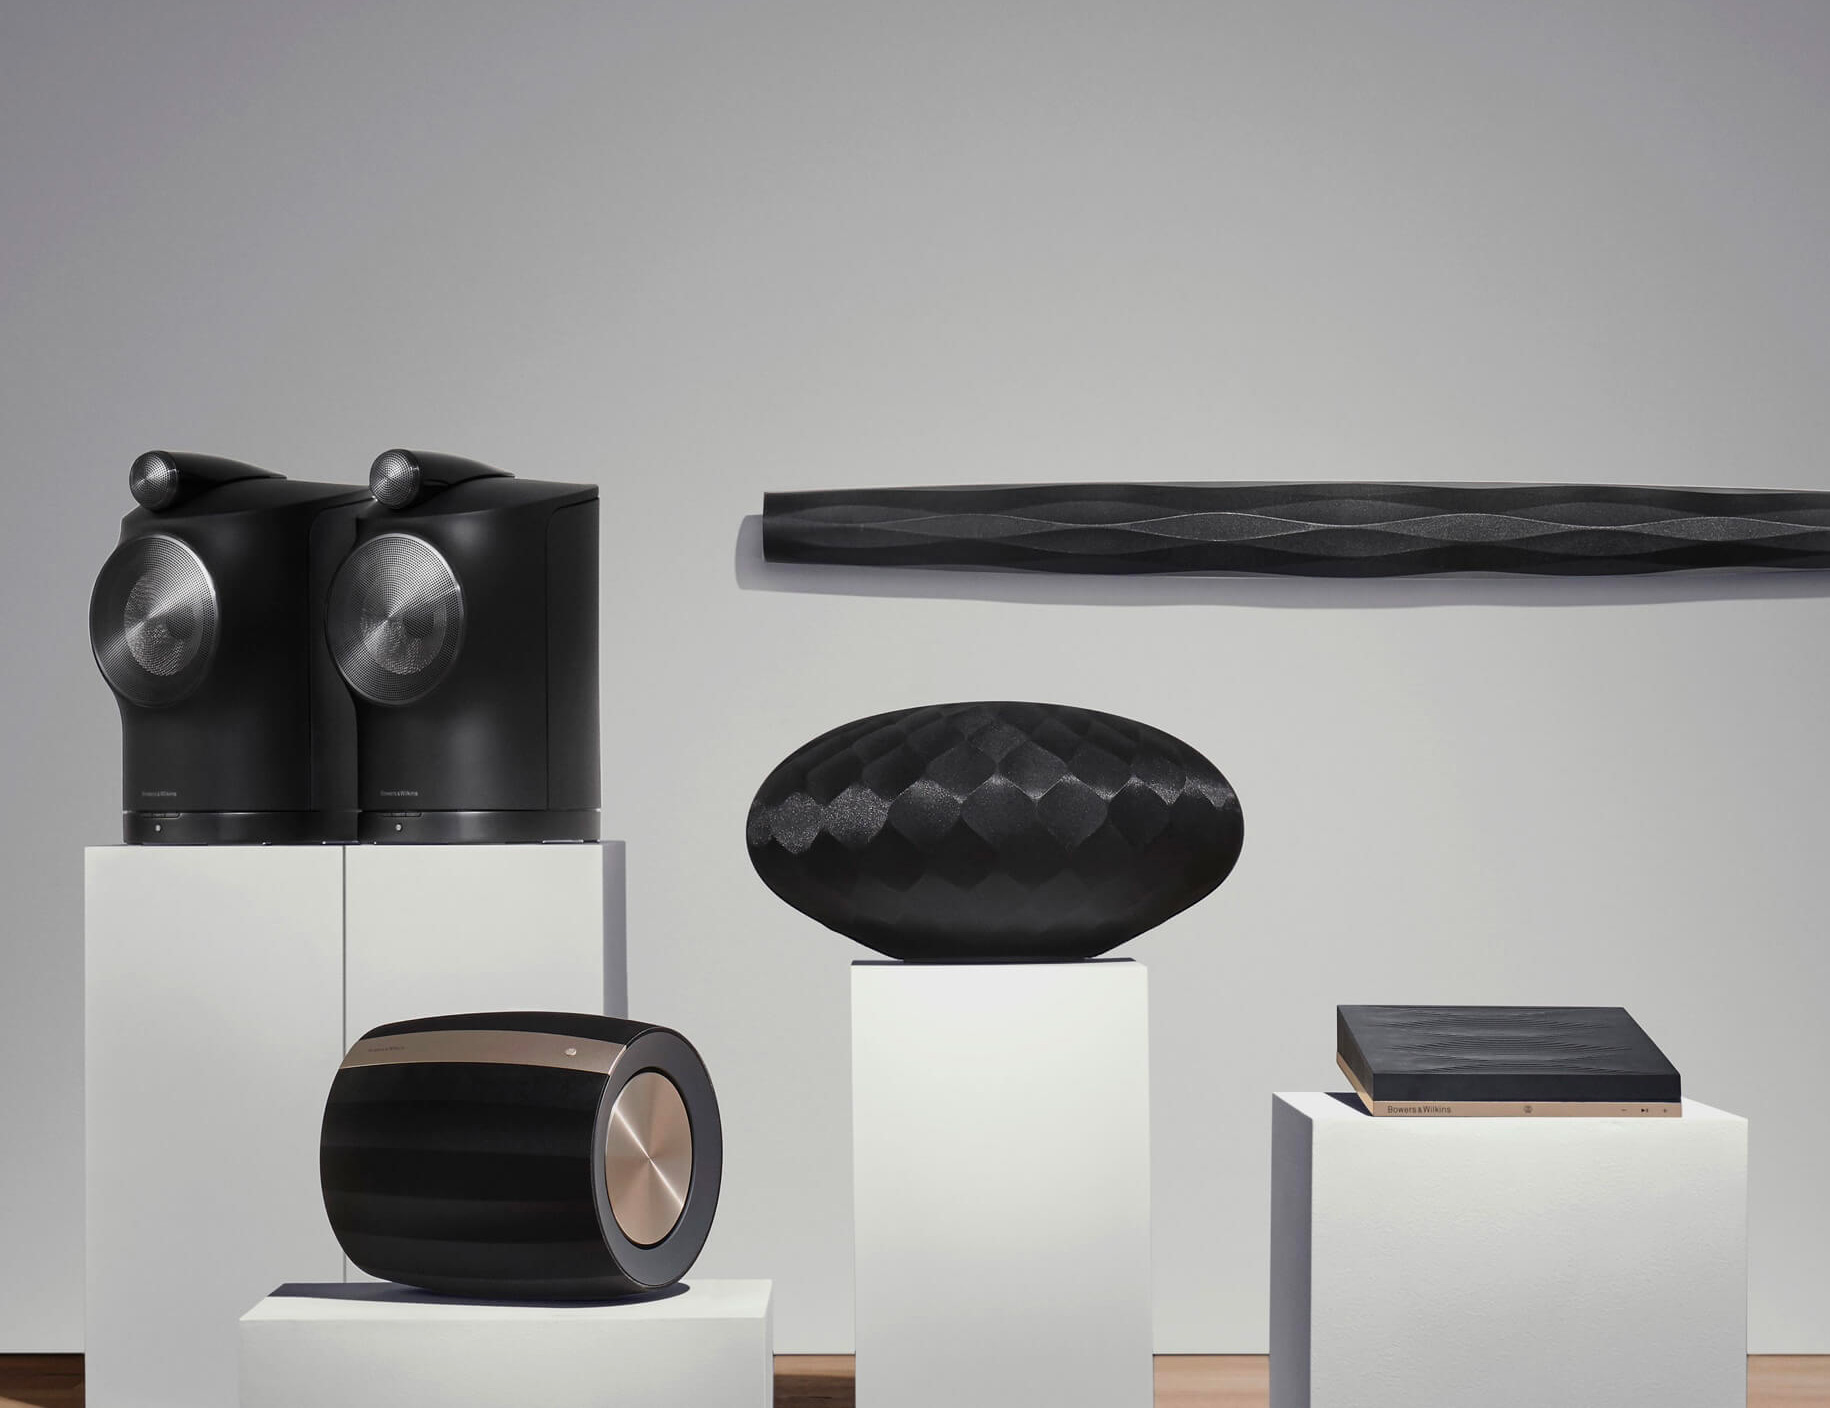 Premium Streaming: Bowers & Wilkins' Formation Speakers at werd.com